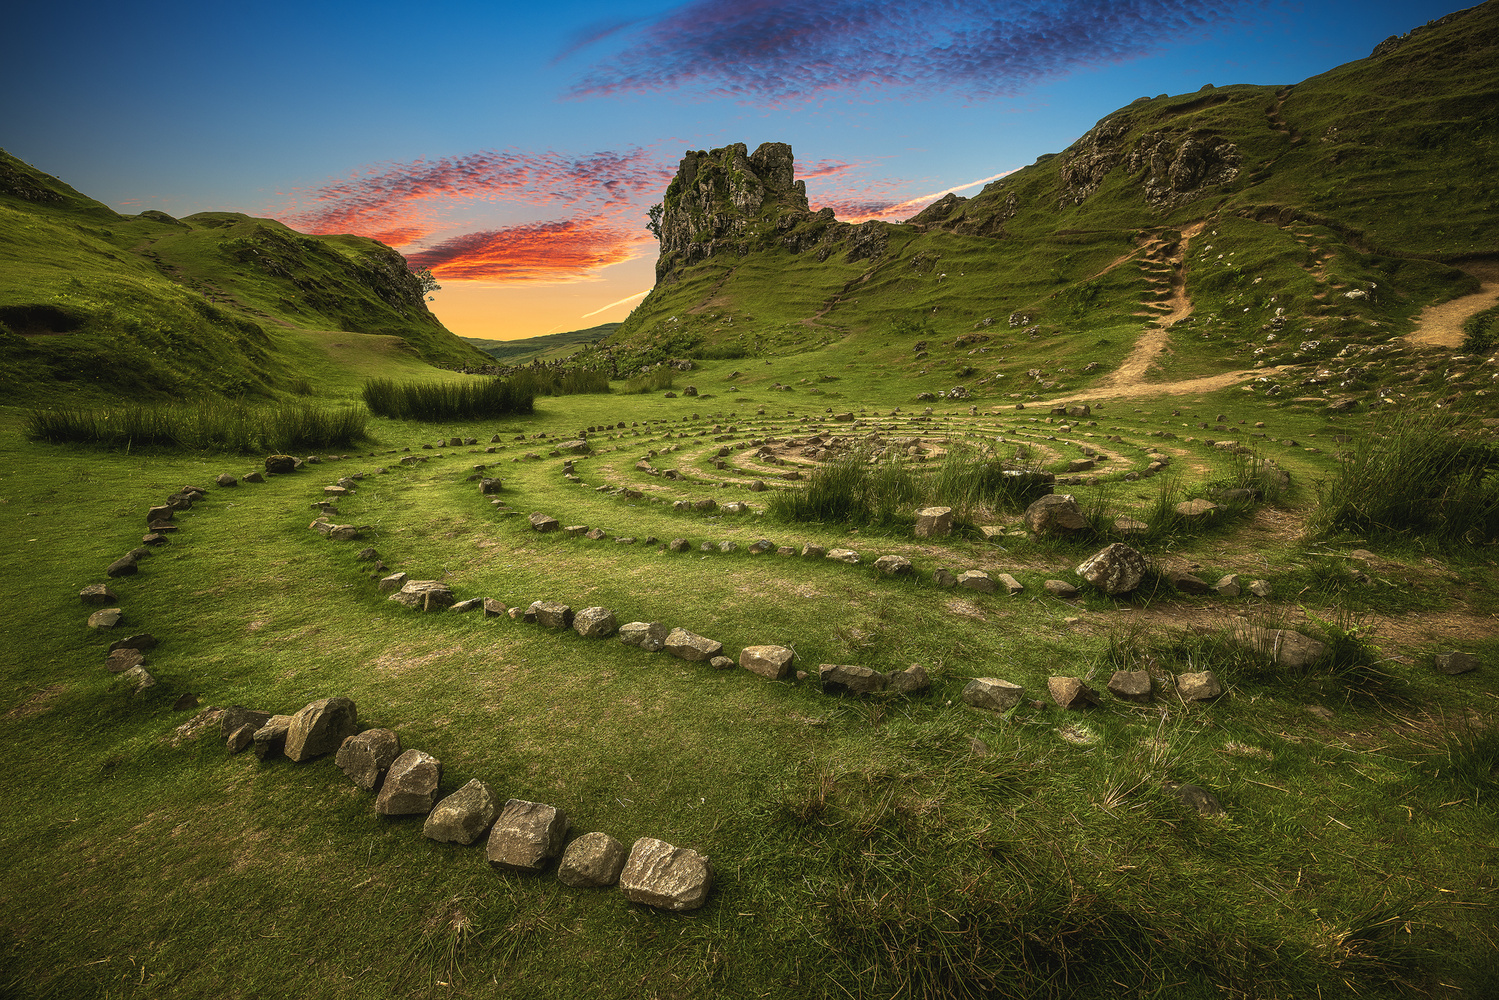 Scotland - Fairy Glen by Jean Claude Castor